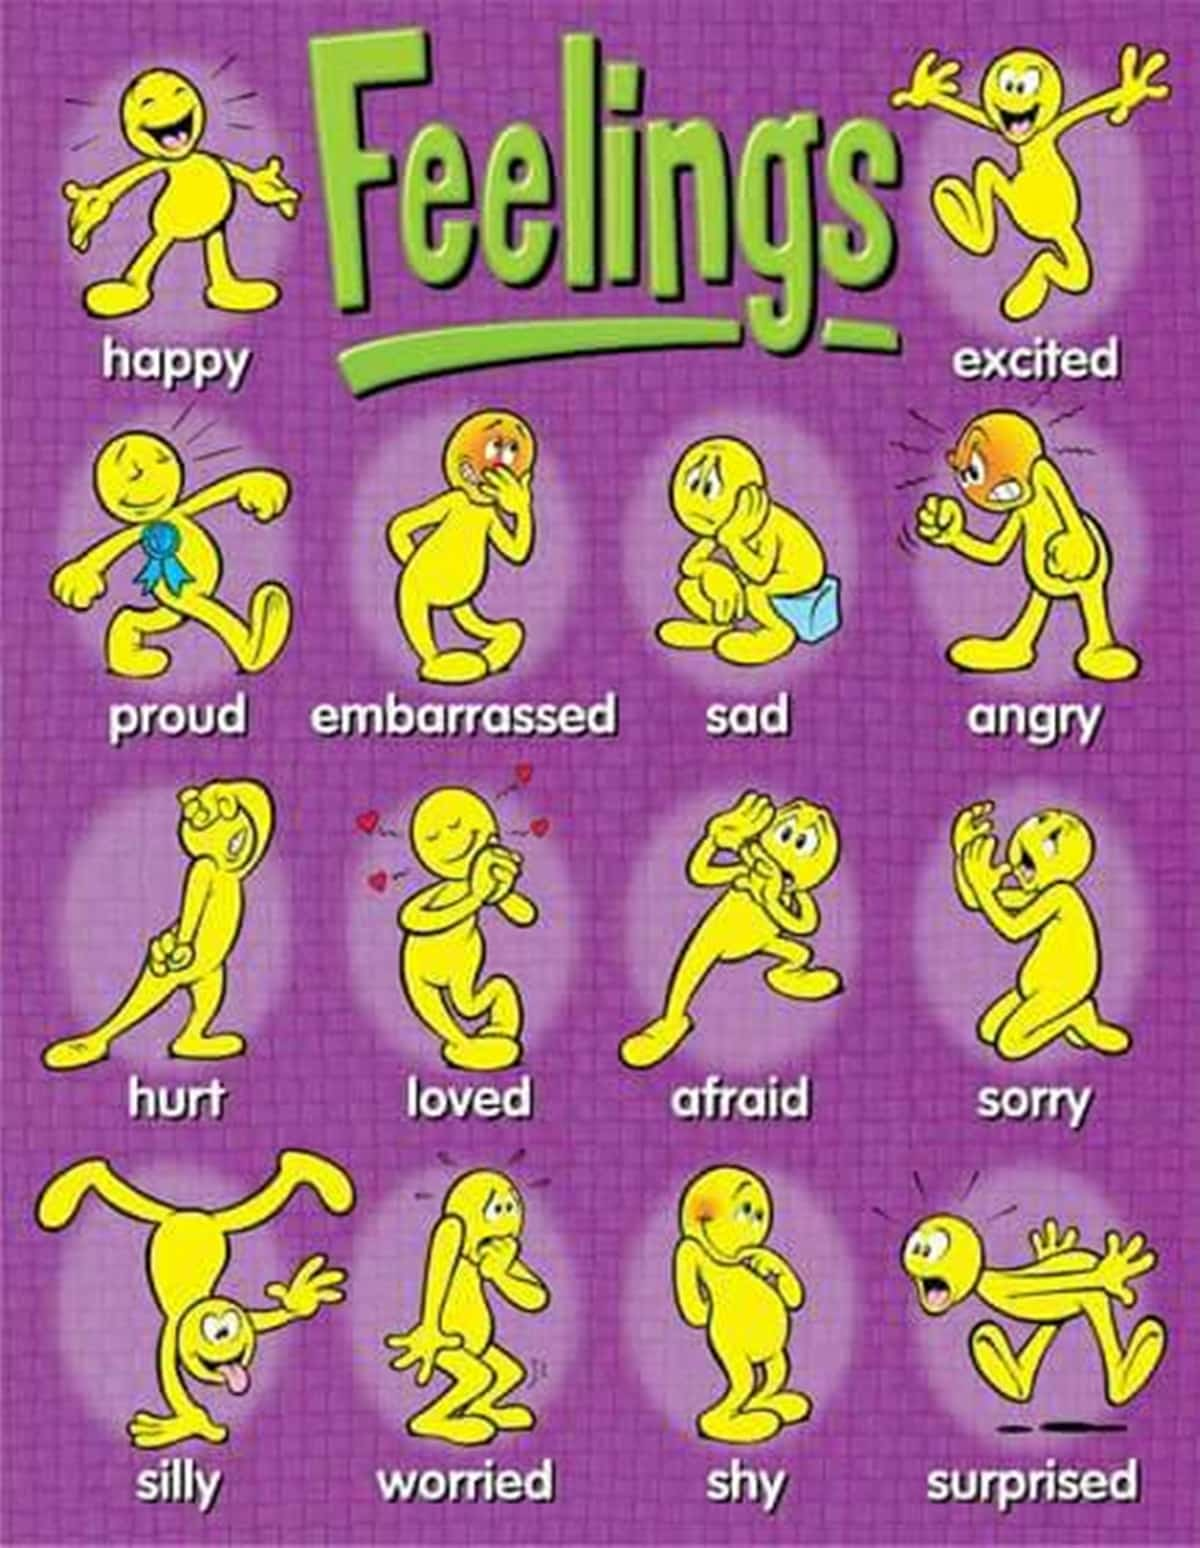 Describing Someone's Feelings and Emotions